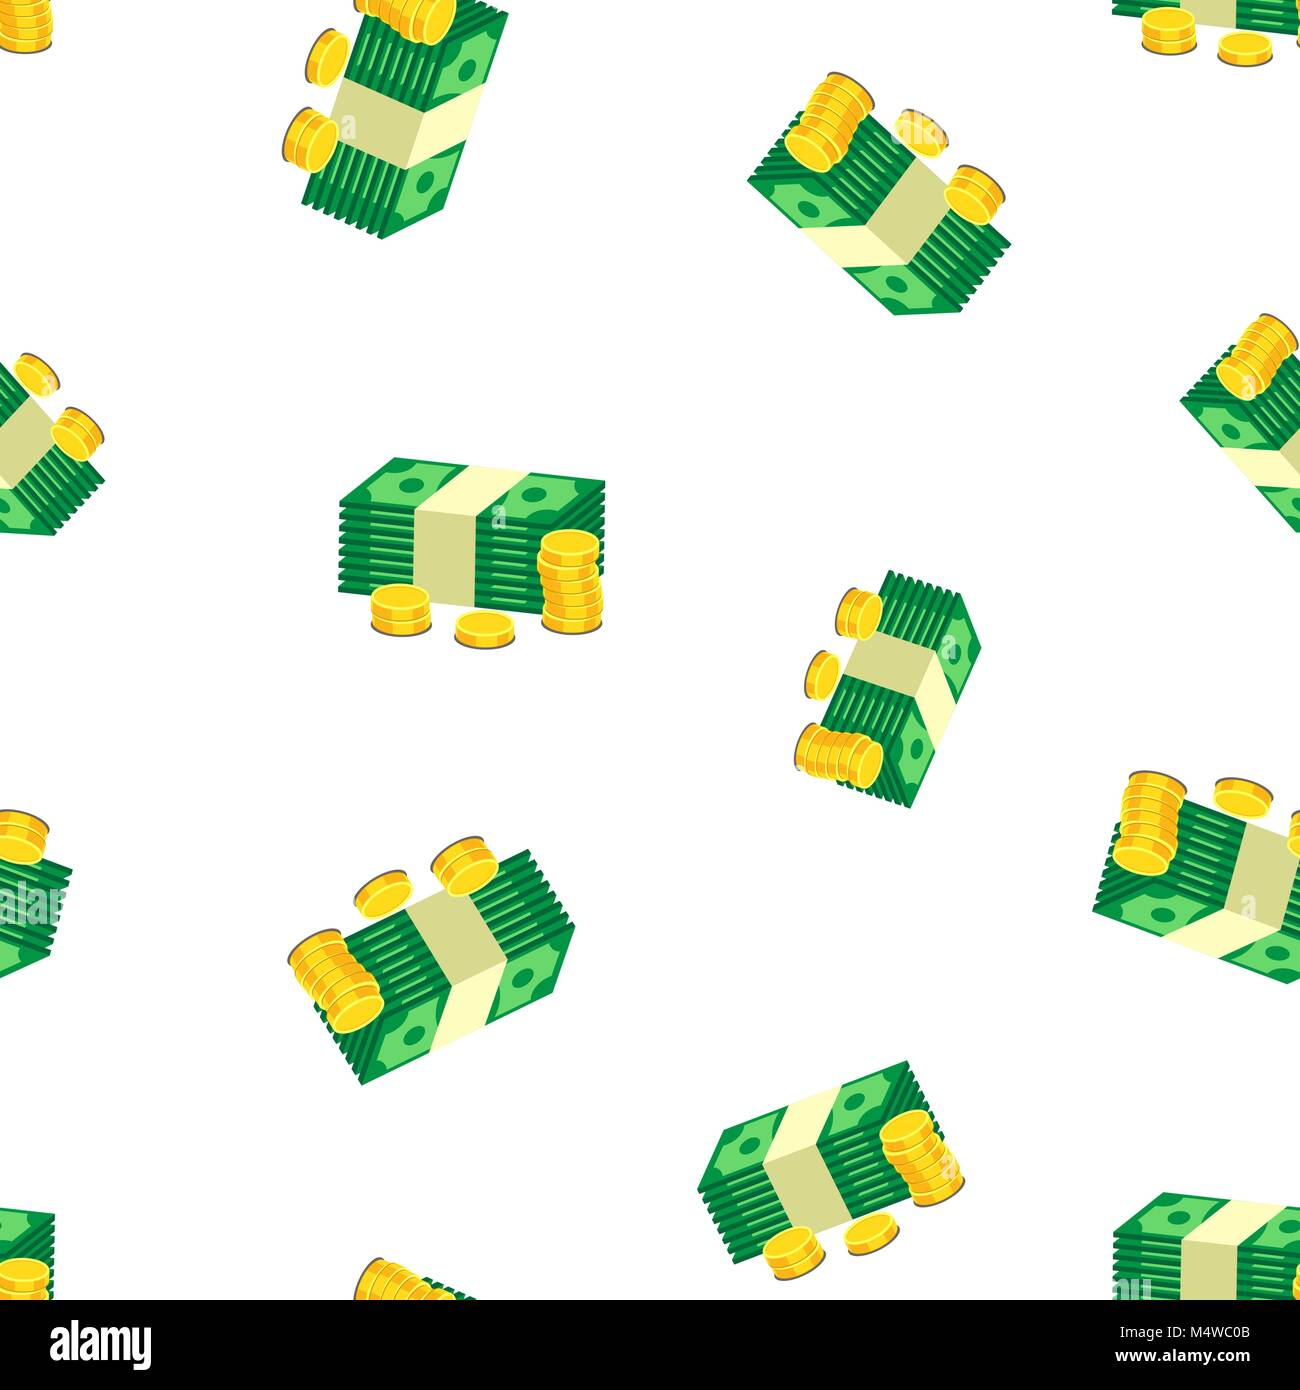 Stacks of gold coins and dollar cash seamless pattern background. Business flat vector illustration. Money sign - Stock Vector